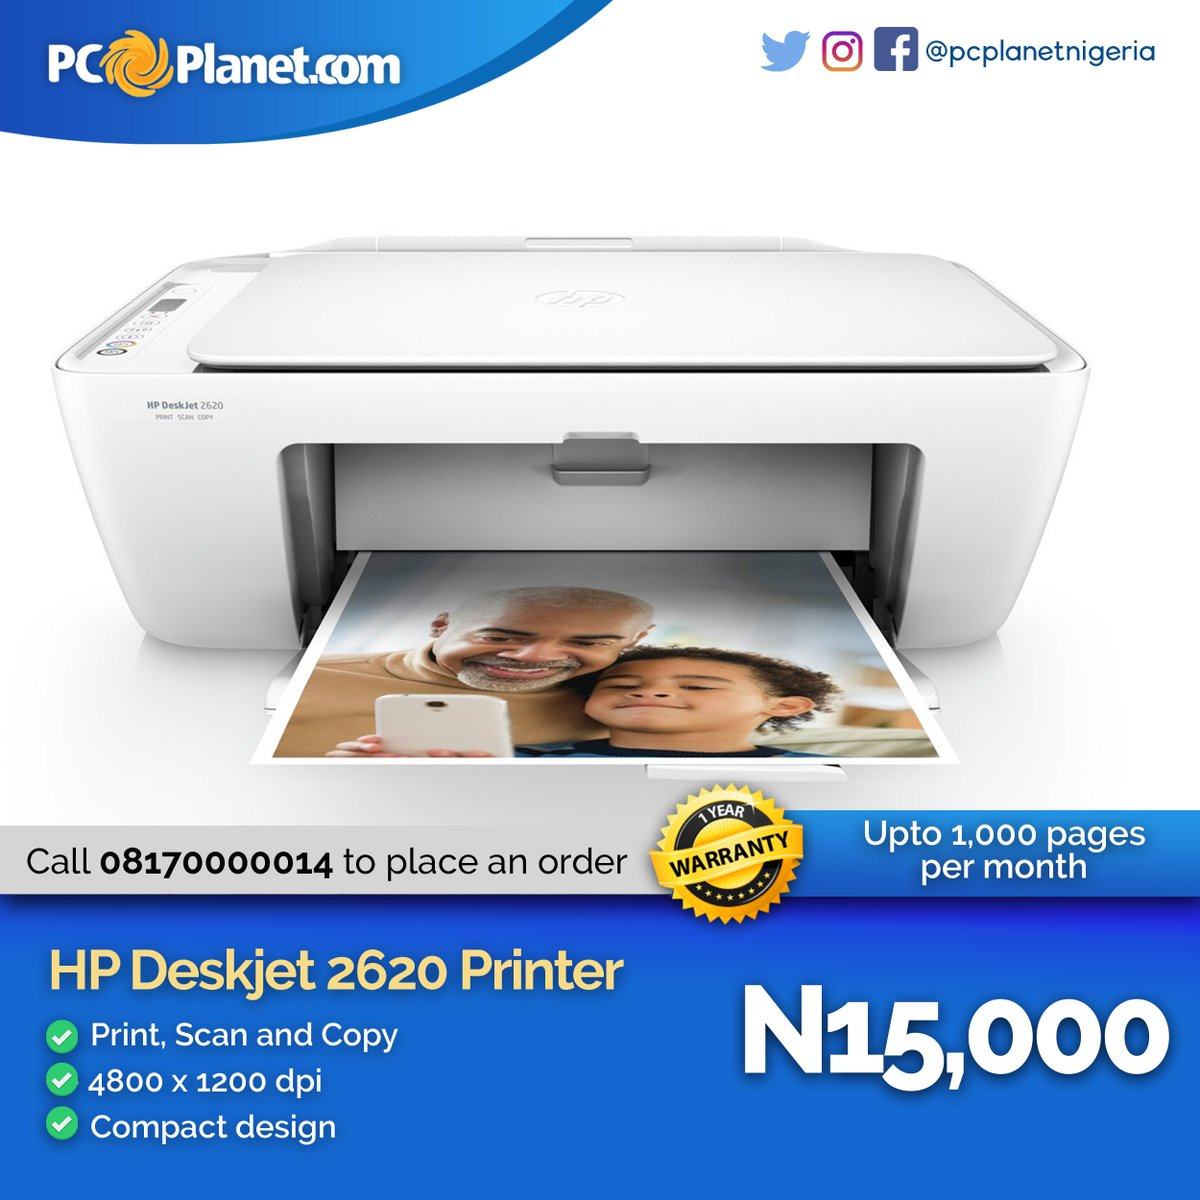 Hpdeskjet Hashtag On Twitter Printer Hp Deskjet Ink Advantage 3775 All In One Call 08140000114 08170000014 Http Owly Lw4330l72py Pcplanetnigeria Phone Laptop Camera Samsung Infinix